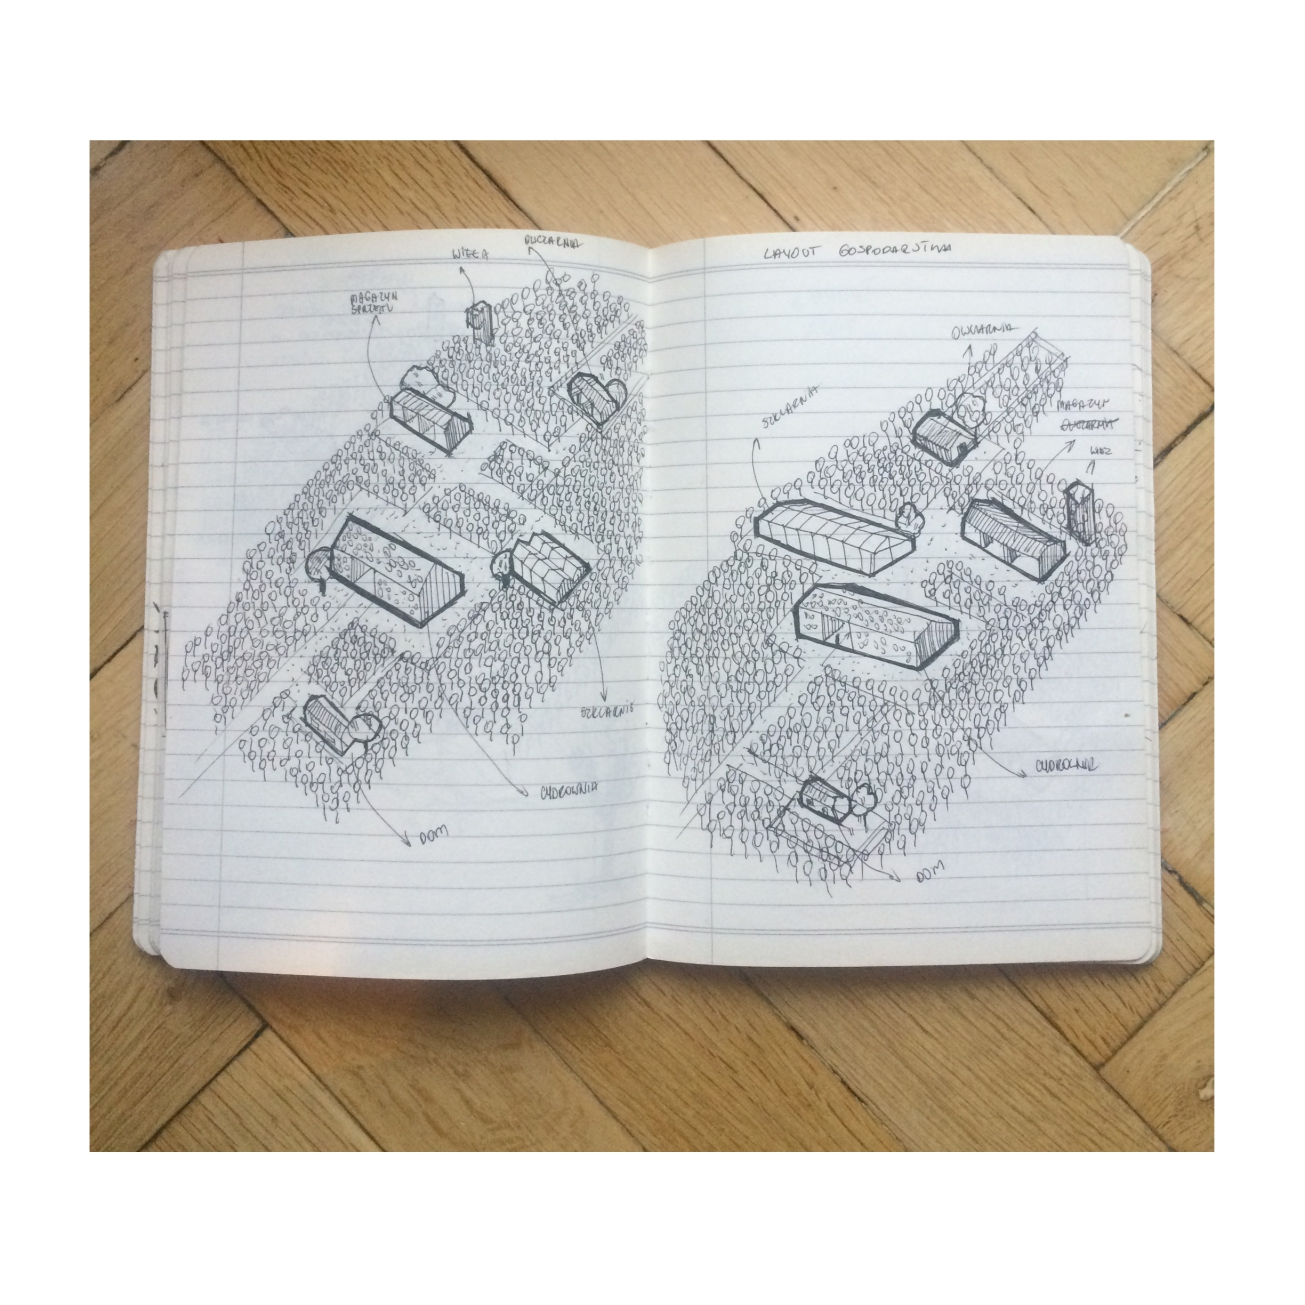 Orchard farm with cider factory,Sonia Dubois,student,4th year,University of Arts Poznan, bachelor of architecture_sketchbook_2